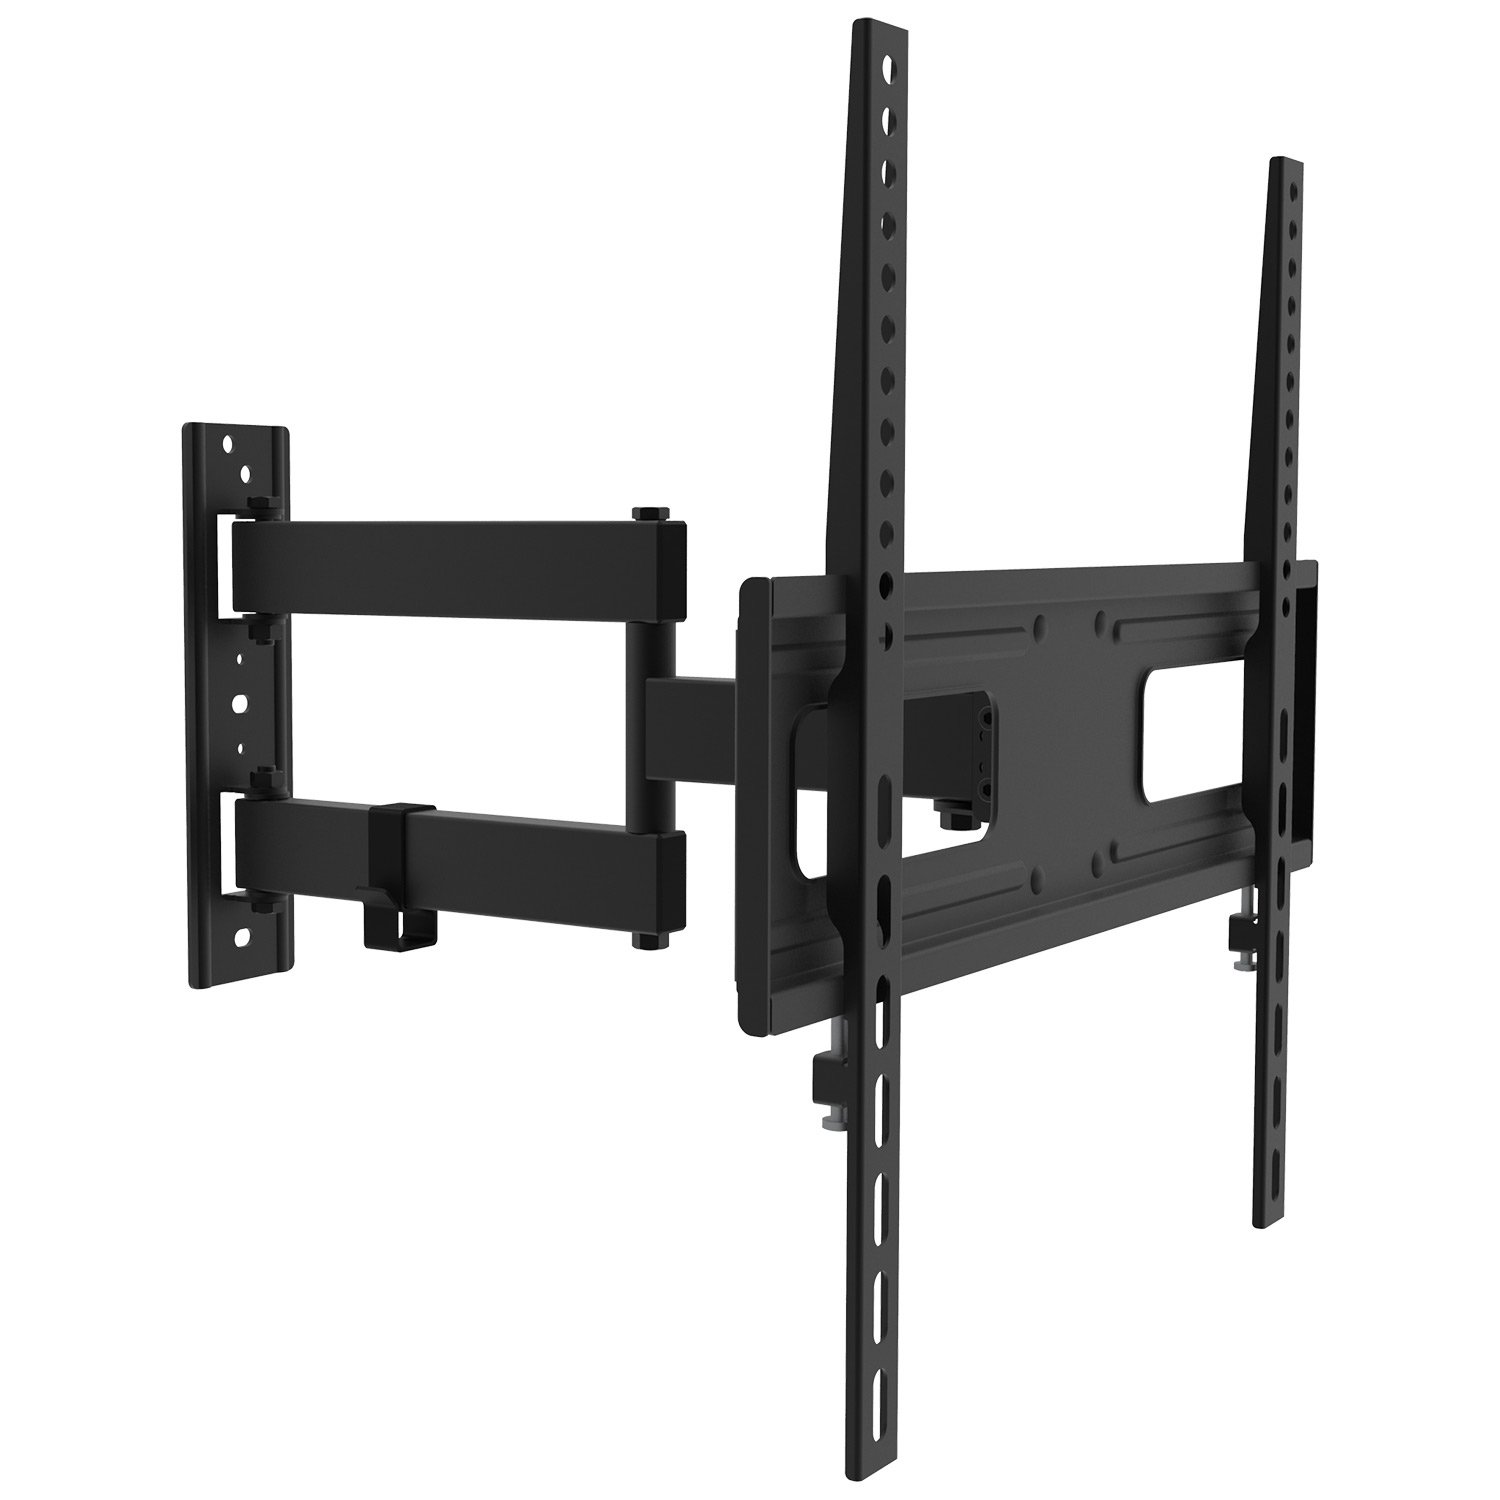 Swivel TV Wall Mount Bracket for 26-55 inch LED, LCD Curved / Flat Panel TVs up to VESA 400X400 - Full Motion Articulating Arm Fits Single Wall Wood Studs by PrimeCables (Heavy Duty, Sturdy, Universal Design) Cab-ZLA09-443